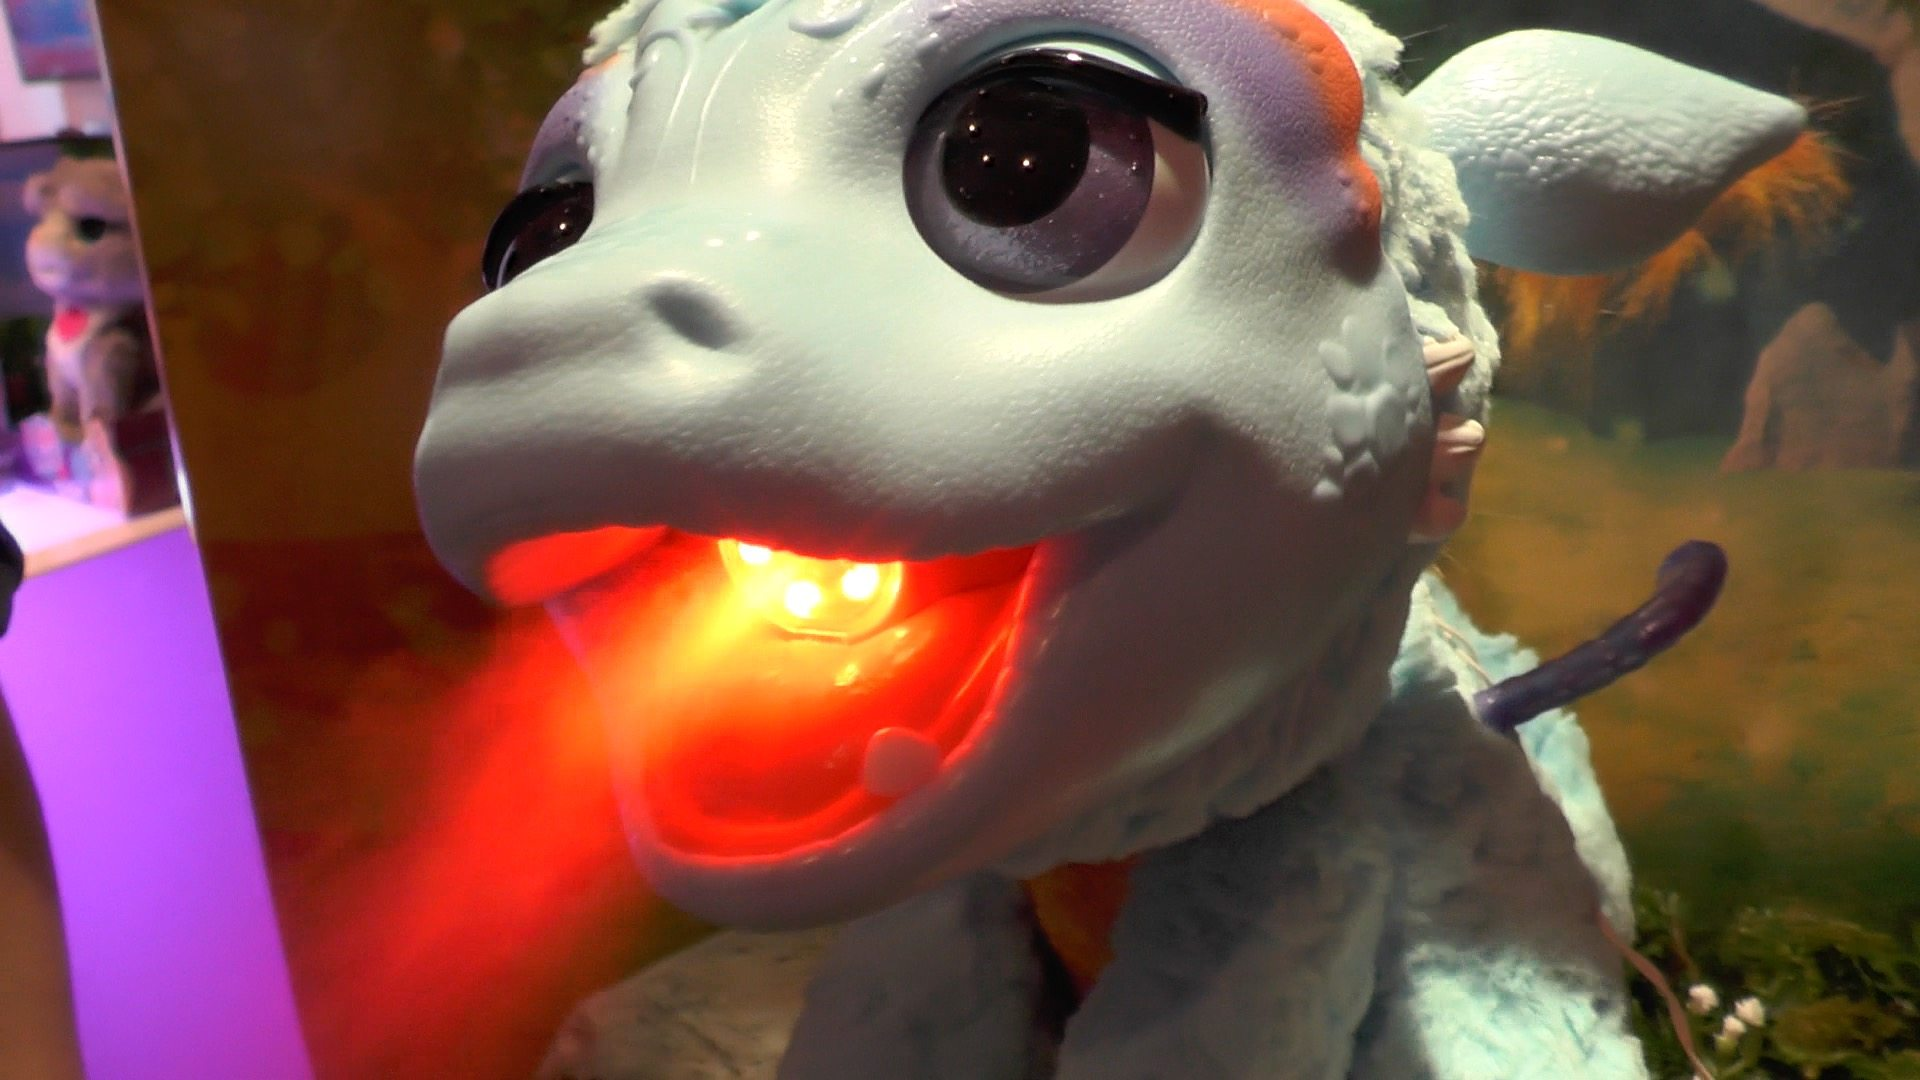 'Torch' Is Hasbro's New Animatronic Dragon, And He's Adorable